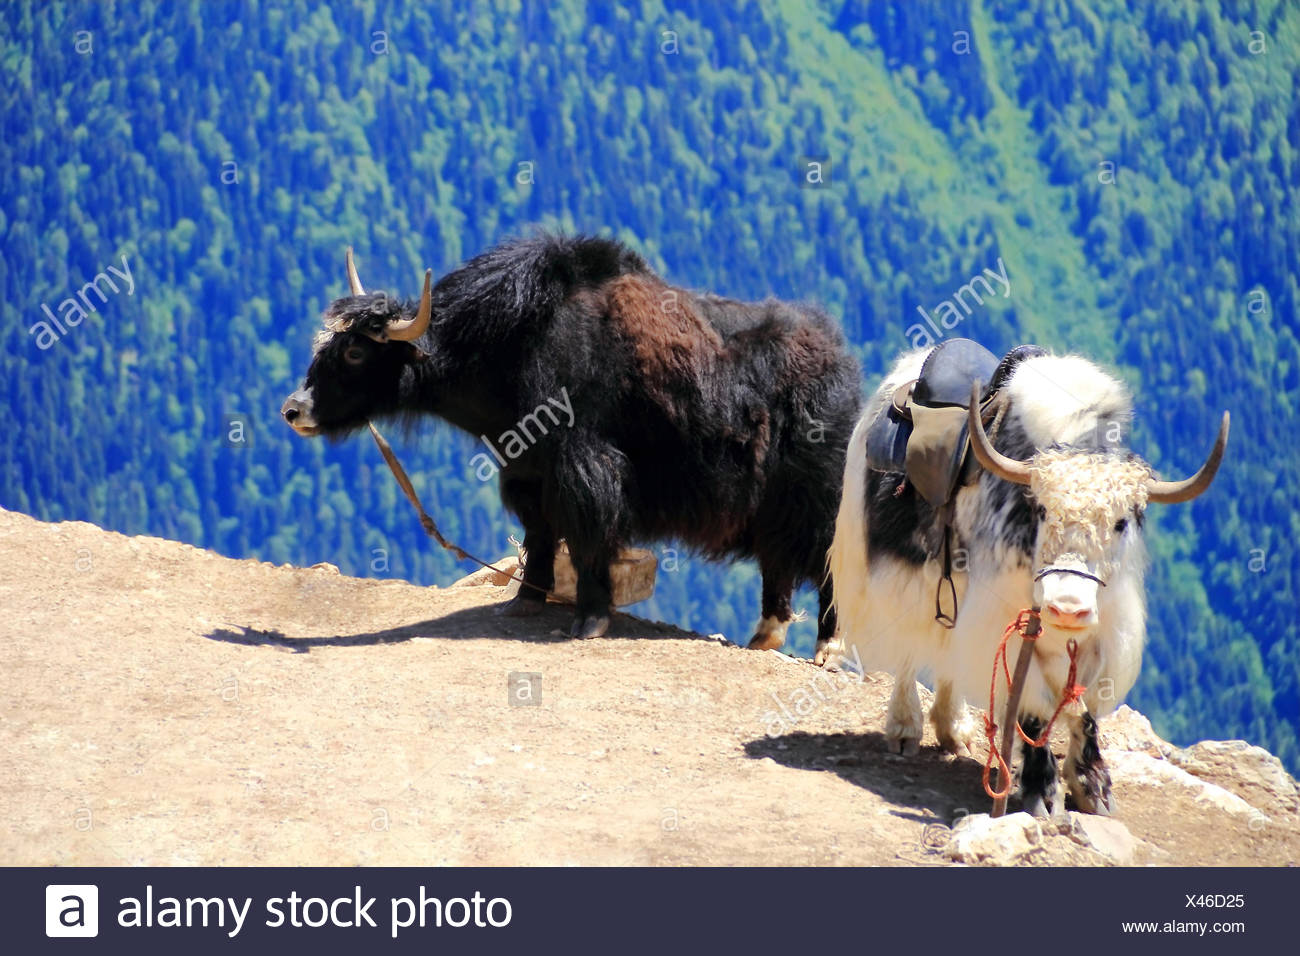 Two shaggy yaks in Caucasus mountains - Stock Image